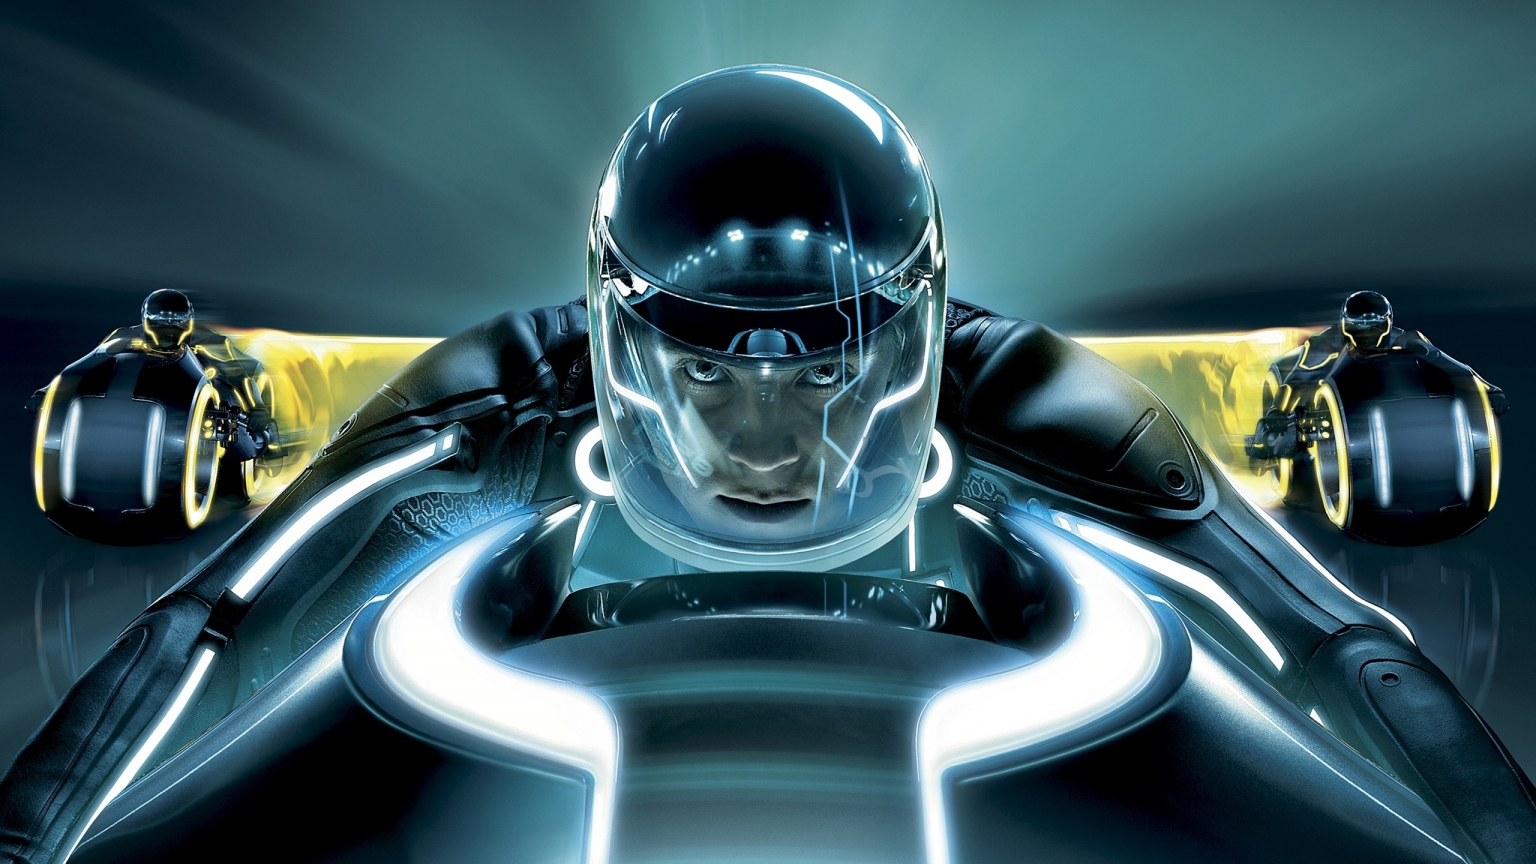 Tron Legacy Movie for 1536 x 864 HDTV resolution